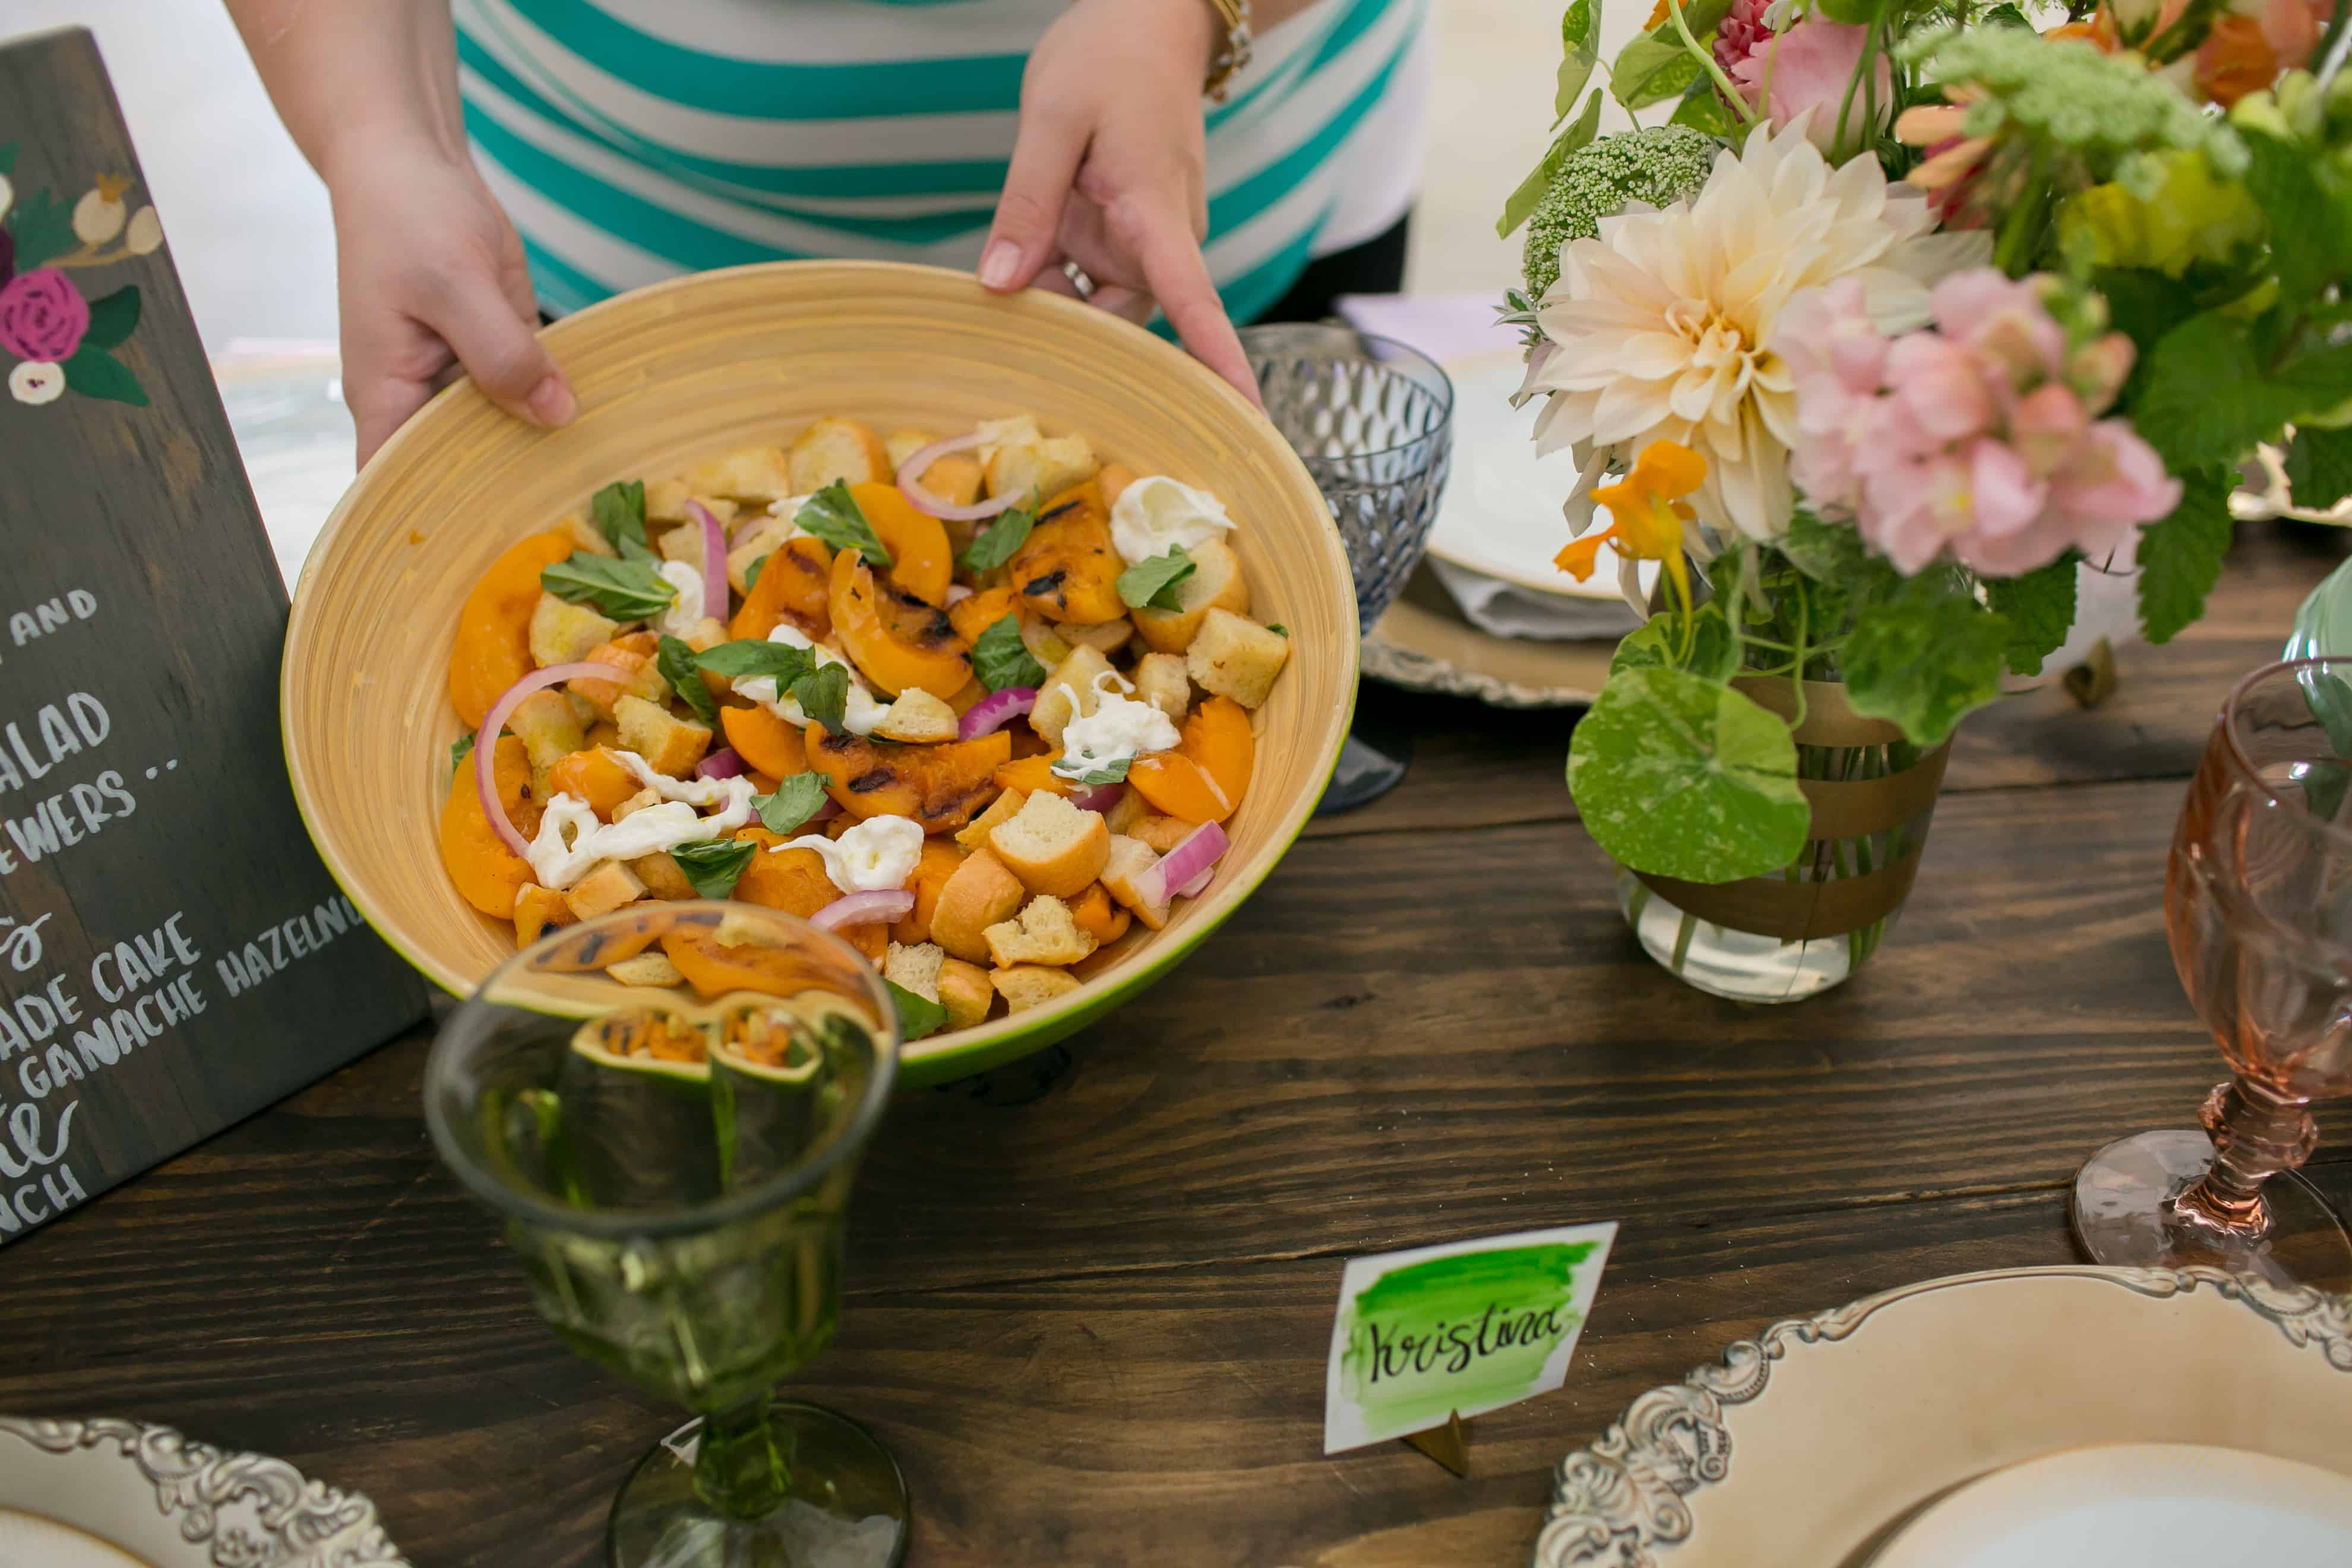 ... to a #SummerFloralParty: Grilled Peach and Burrata Panzanella Salad